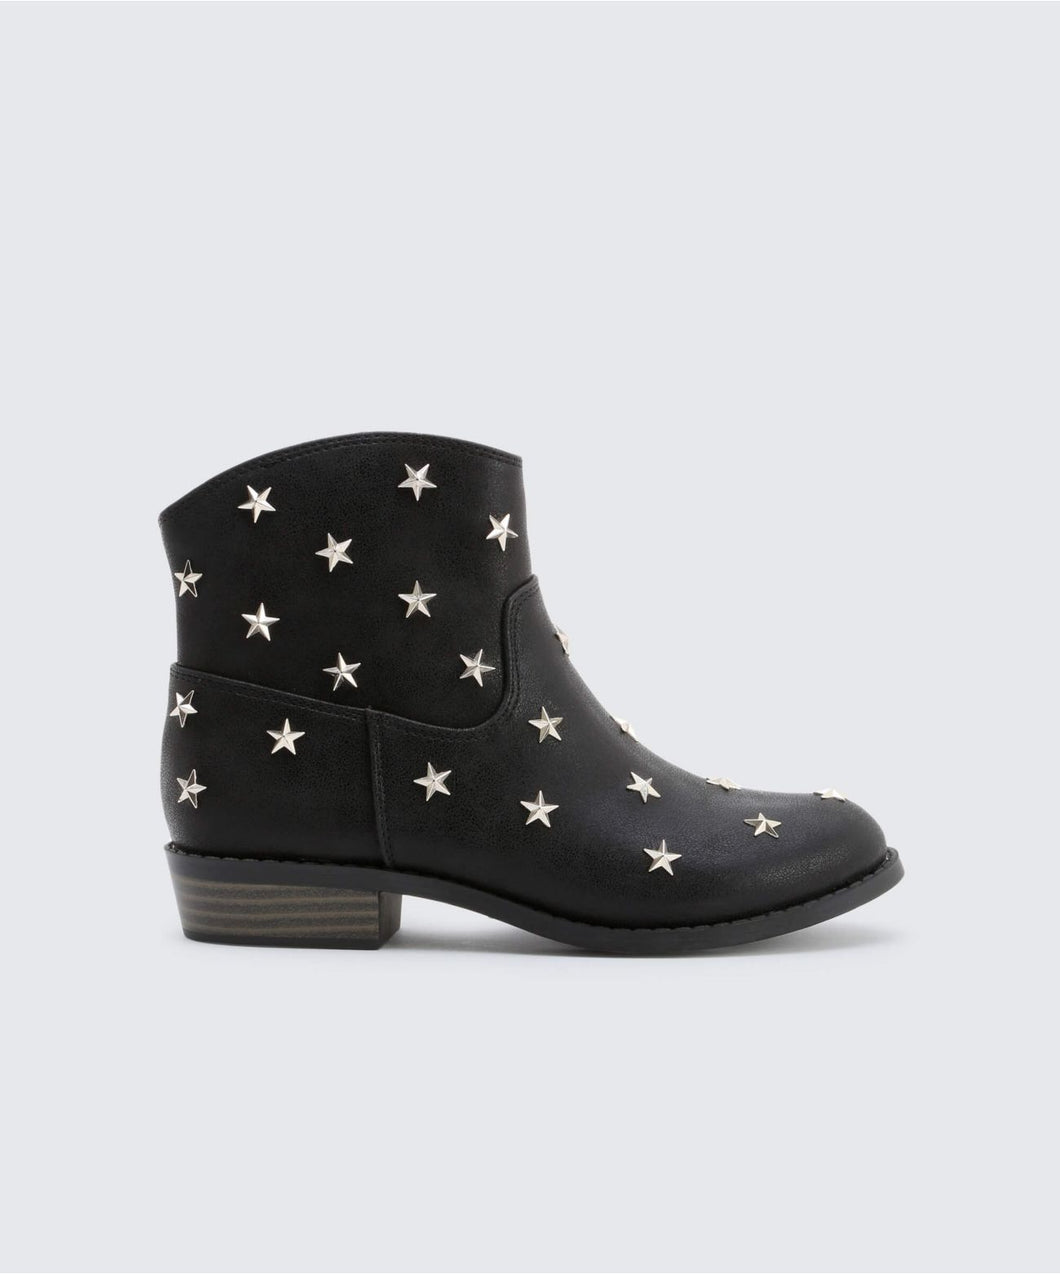 SALO BOOTIES BLACK -   Dolce Vita